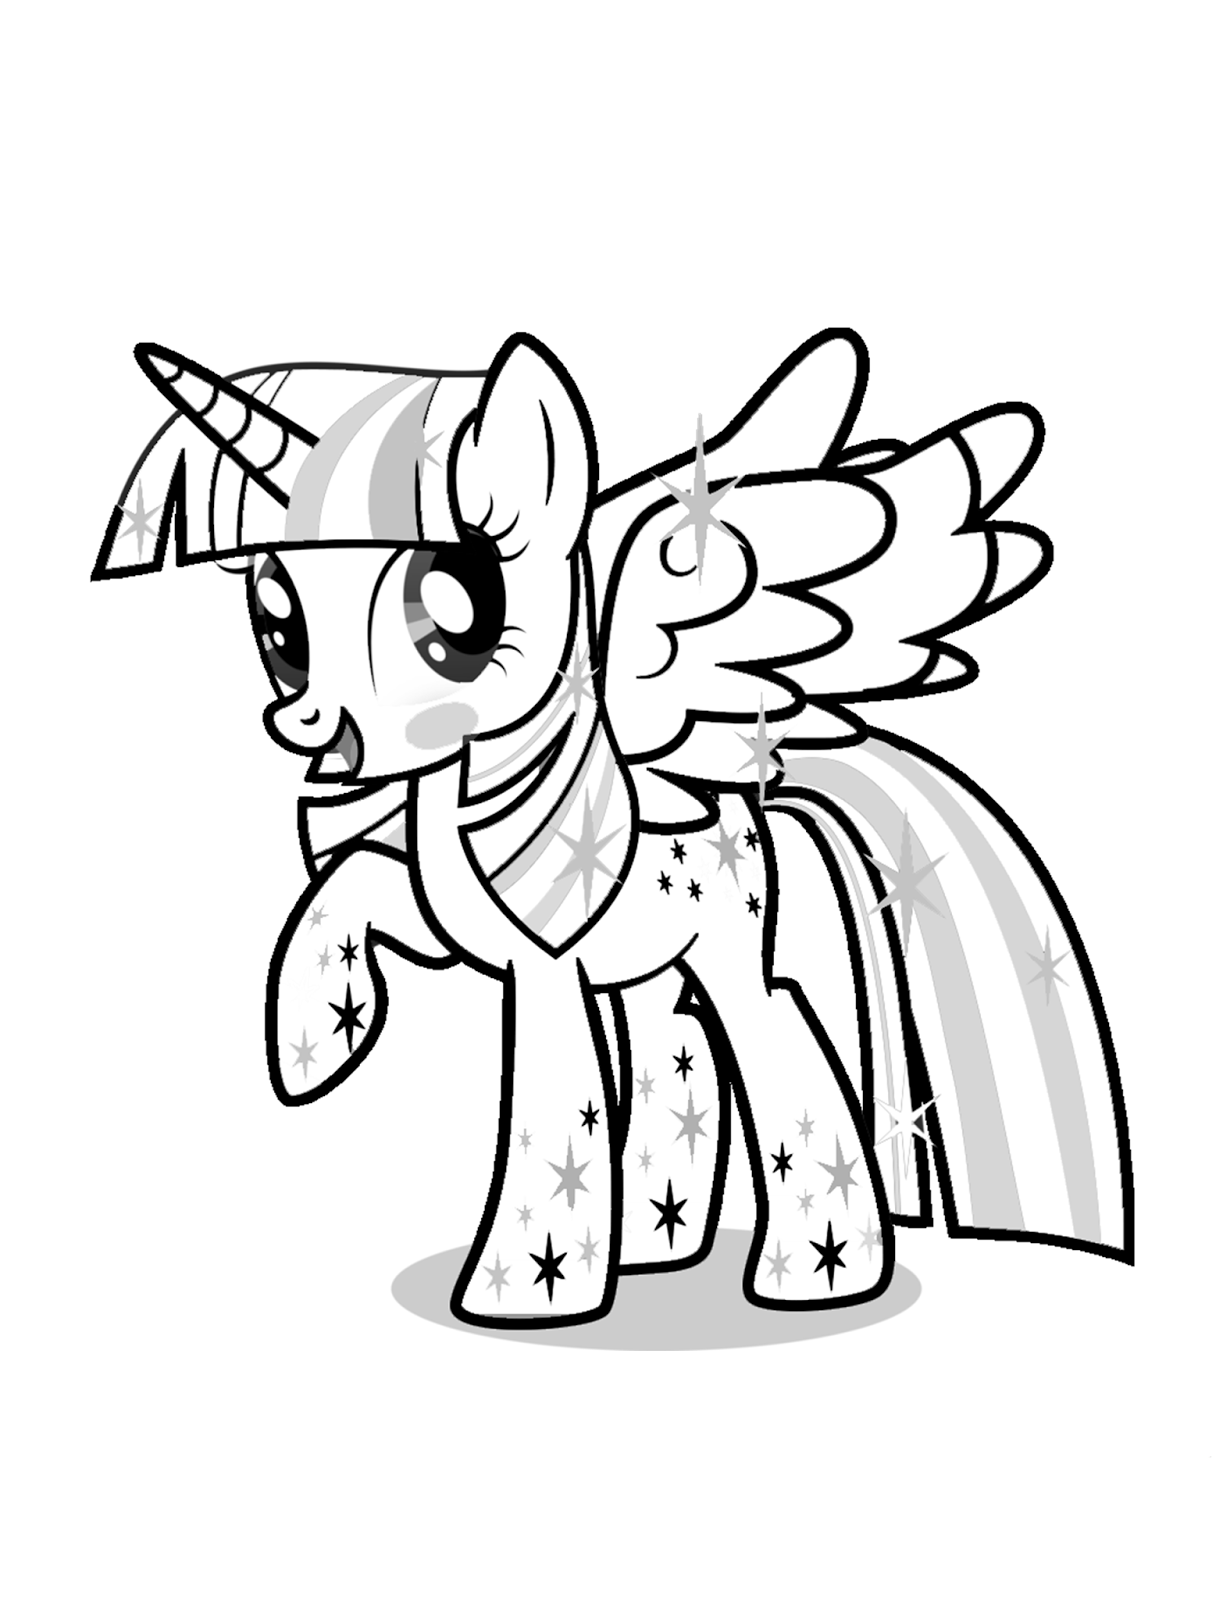 my little pony coloring pages twilight sparkle my little pony twilight sparkle coloring pages coloring pony twilight coloring little my pages sparkle